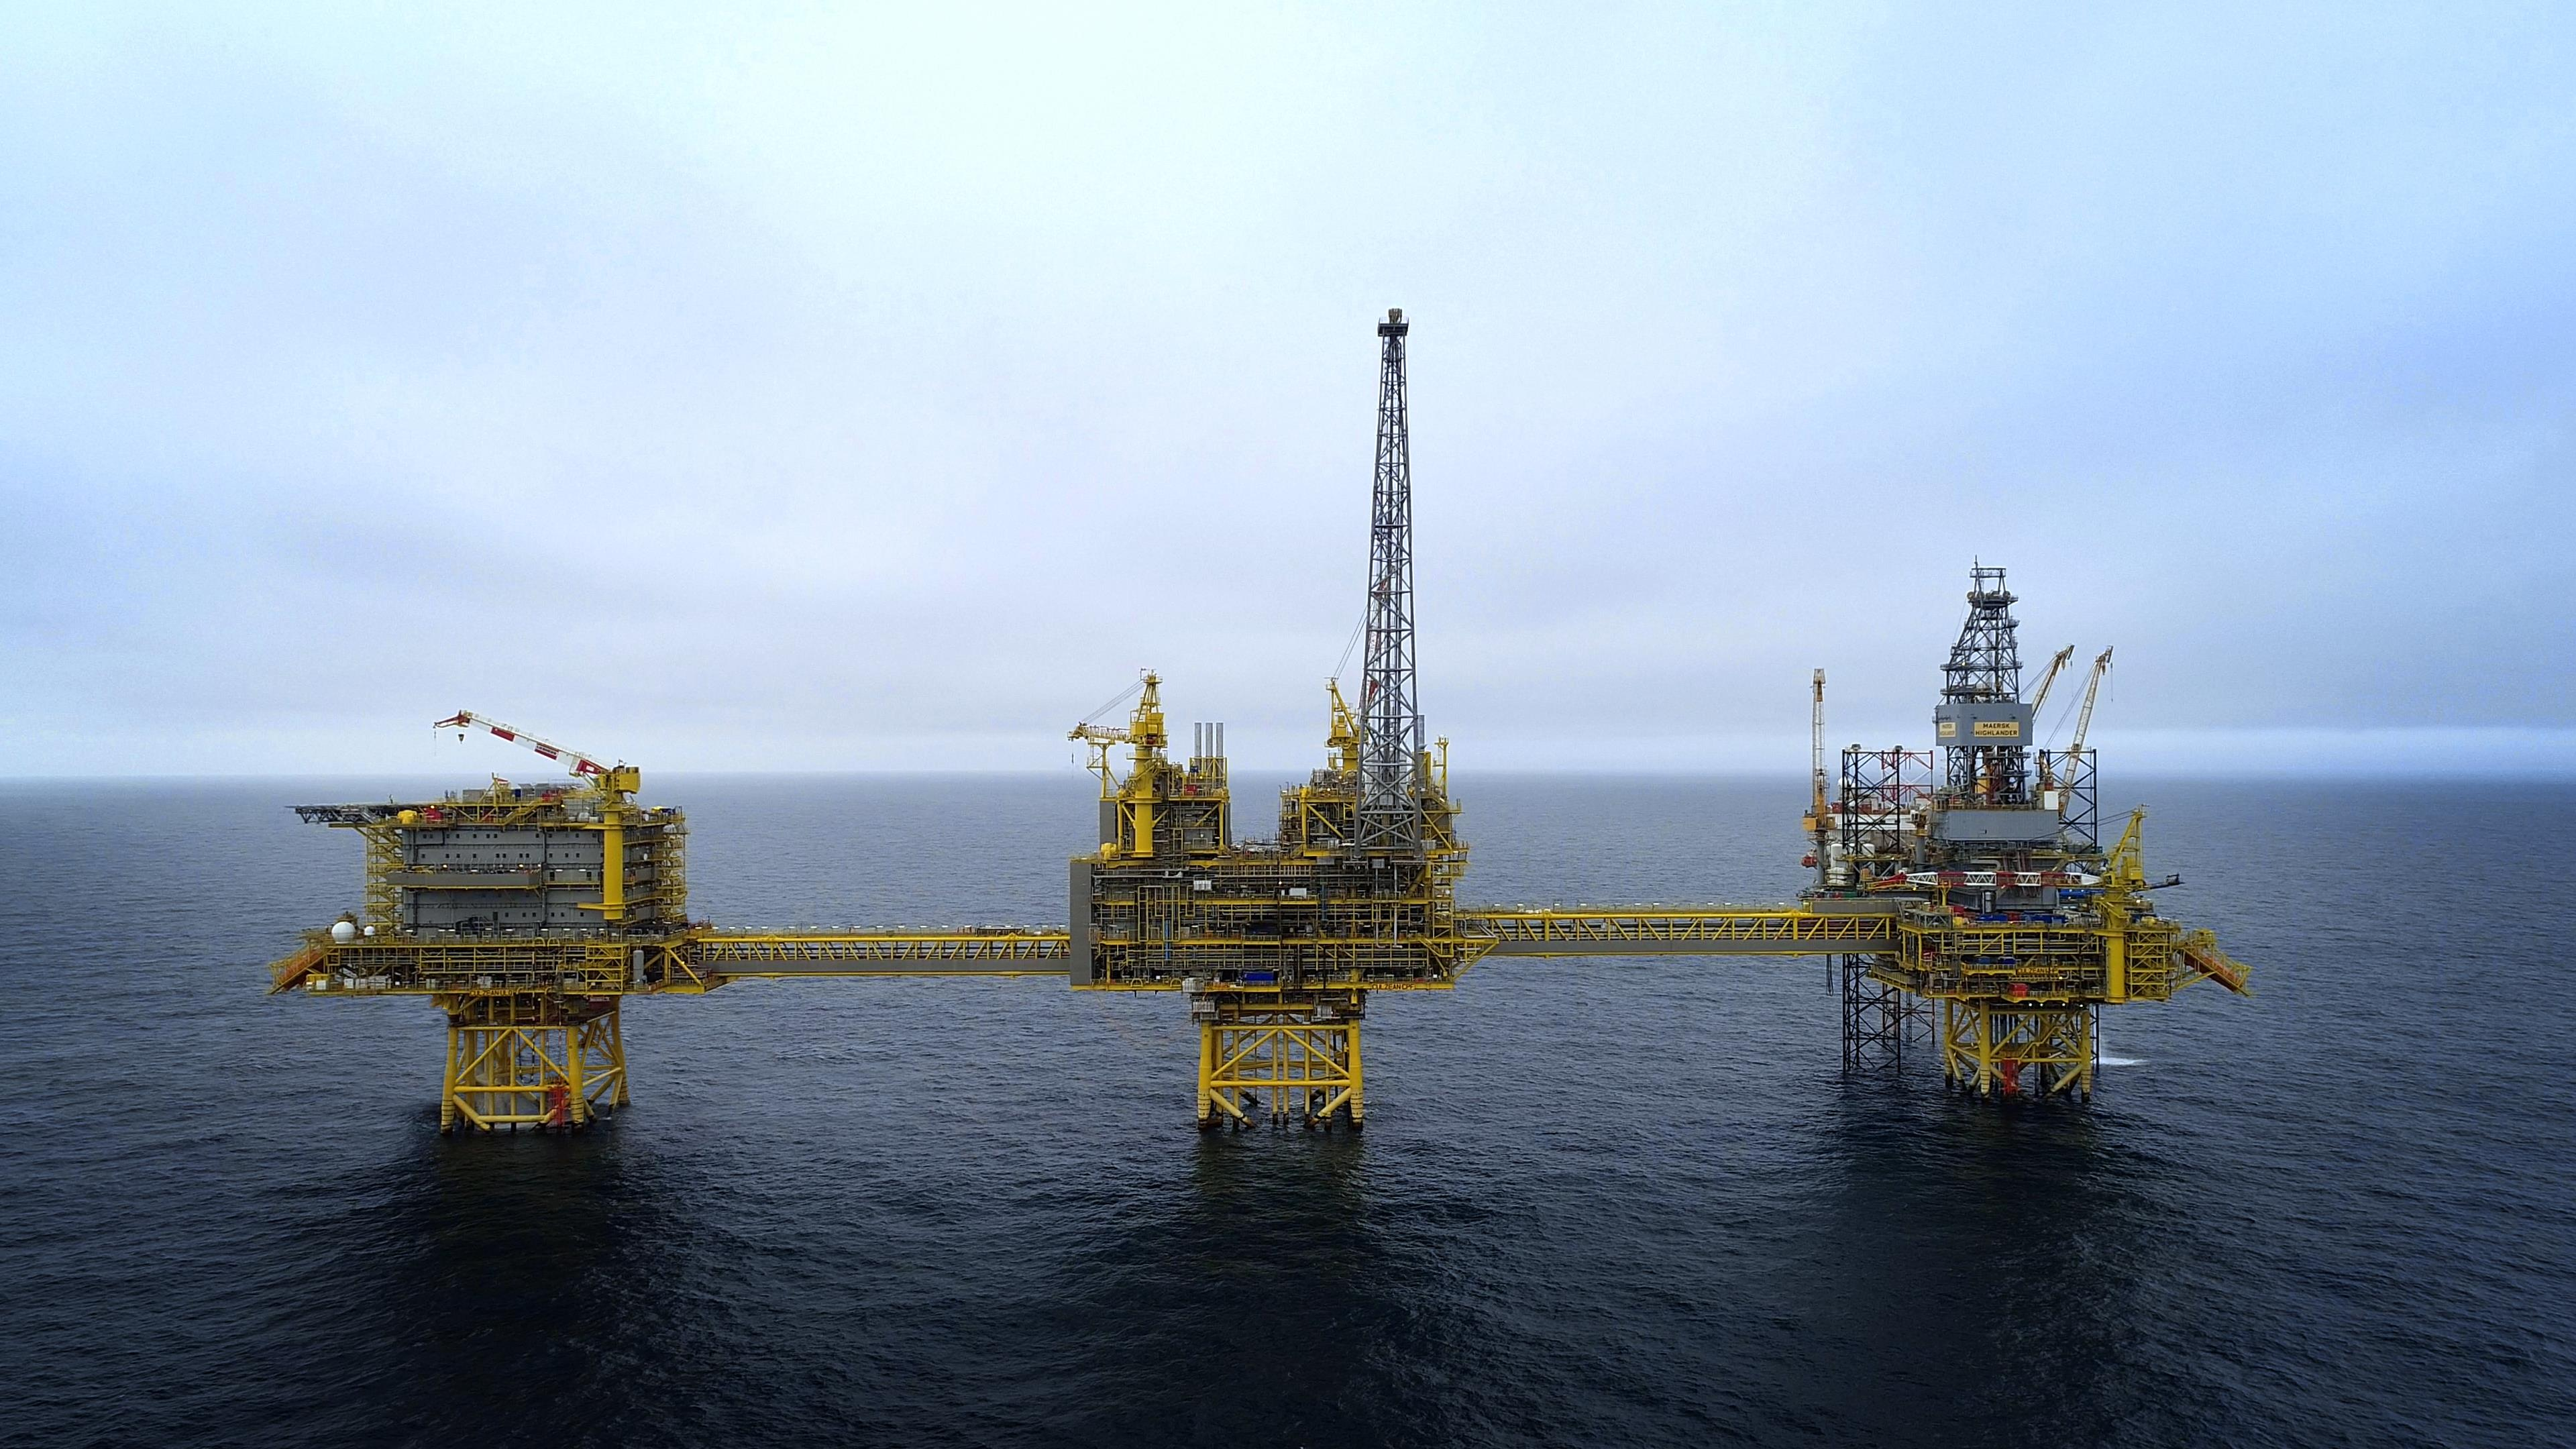 The Culzean gas project in the North Sea started production in 2019